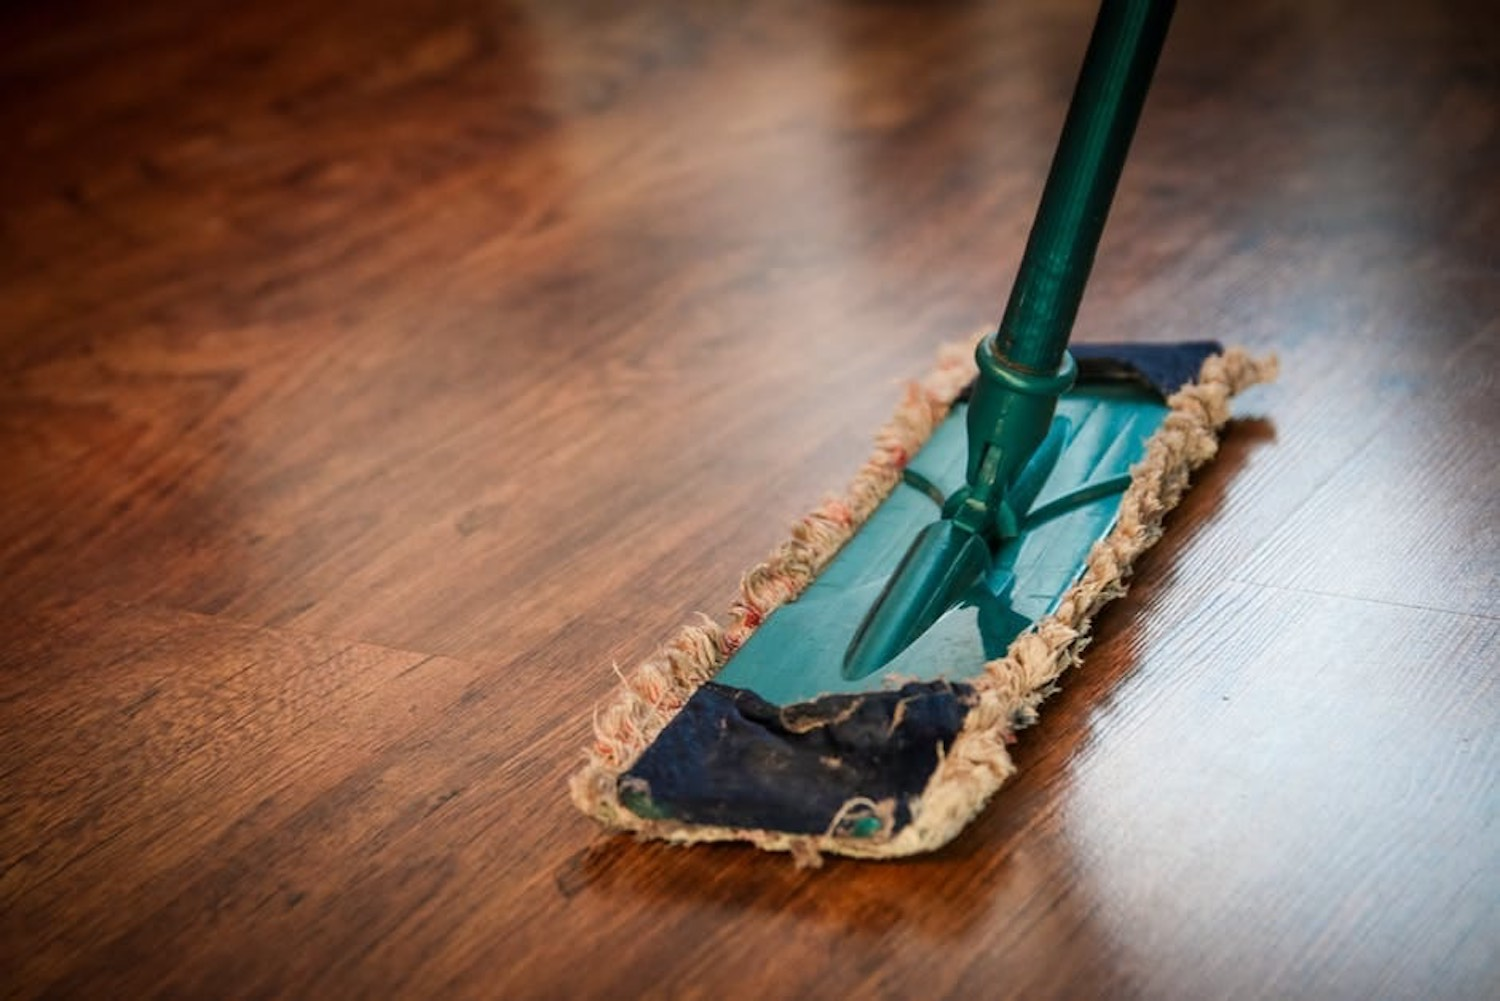 How to Choose the Right Mop for the Job